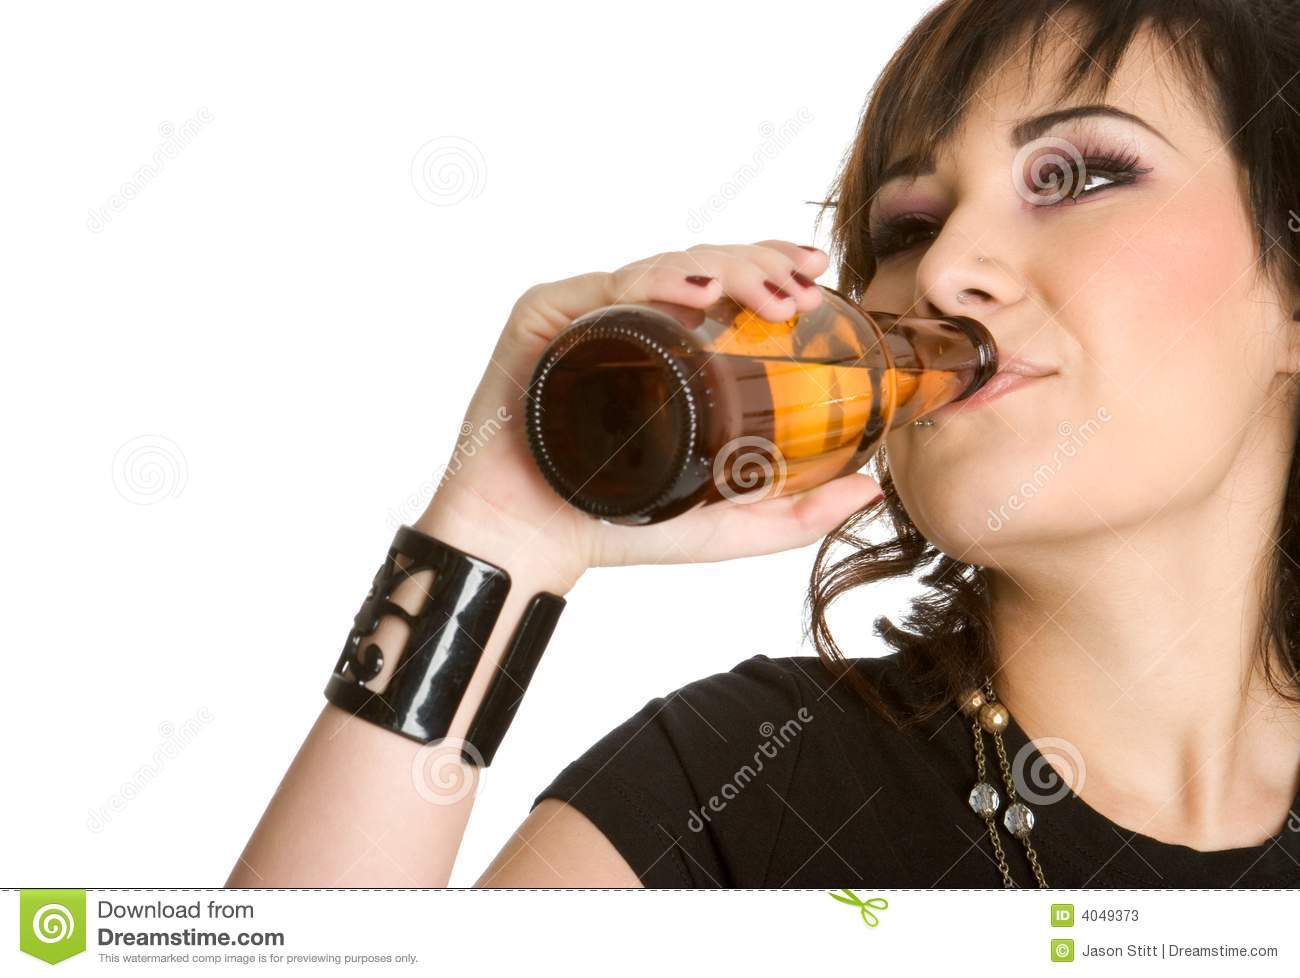 Beer Bottle Woman Stock Photos - Image: 4049373